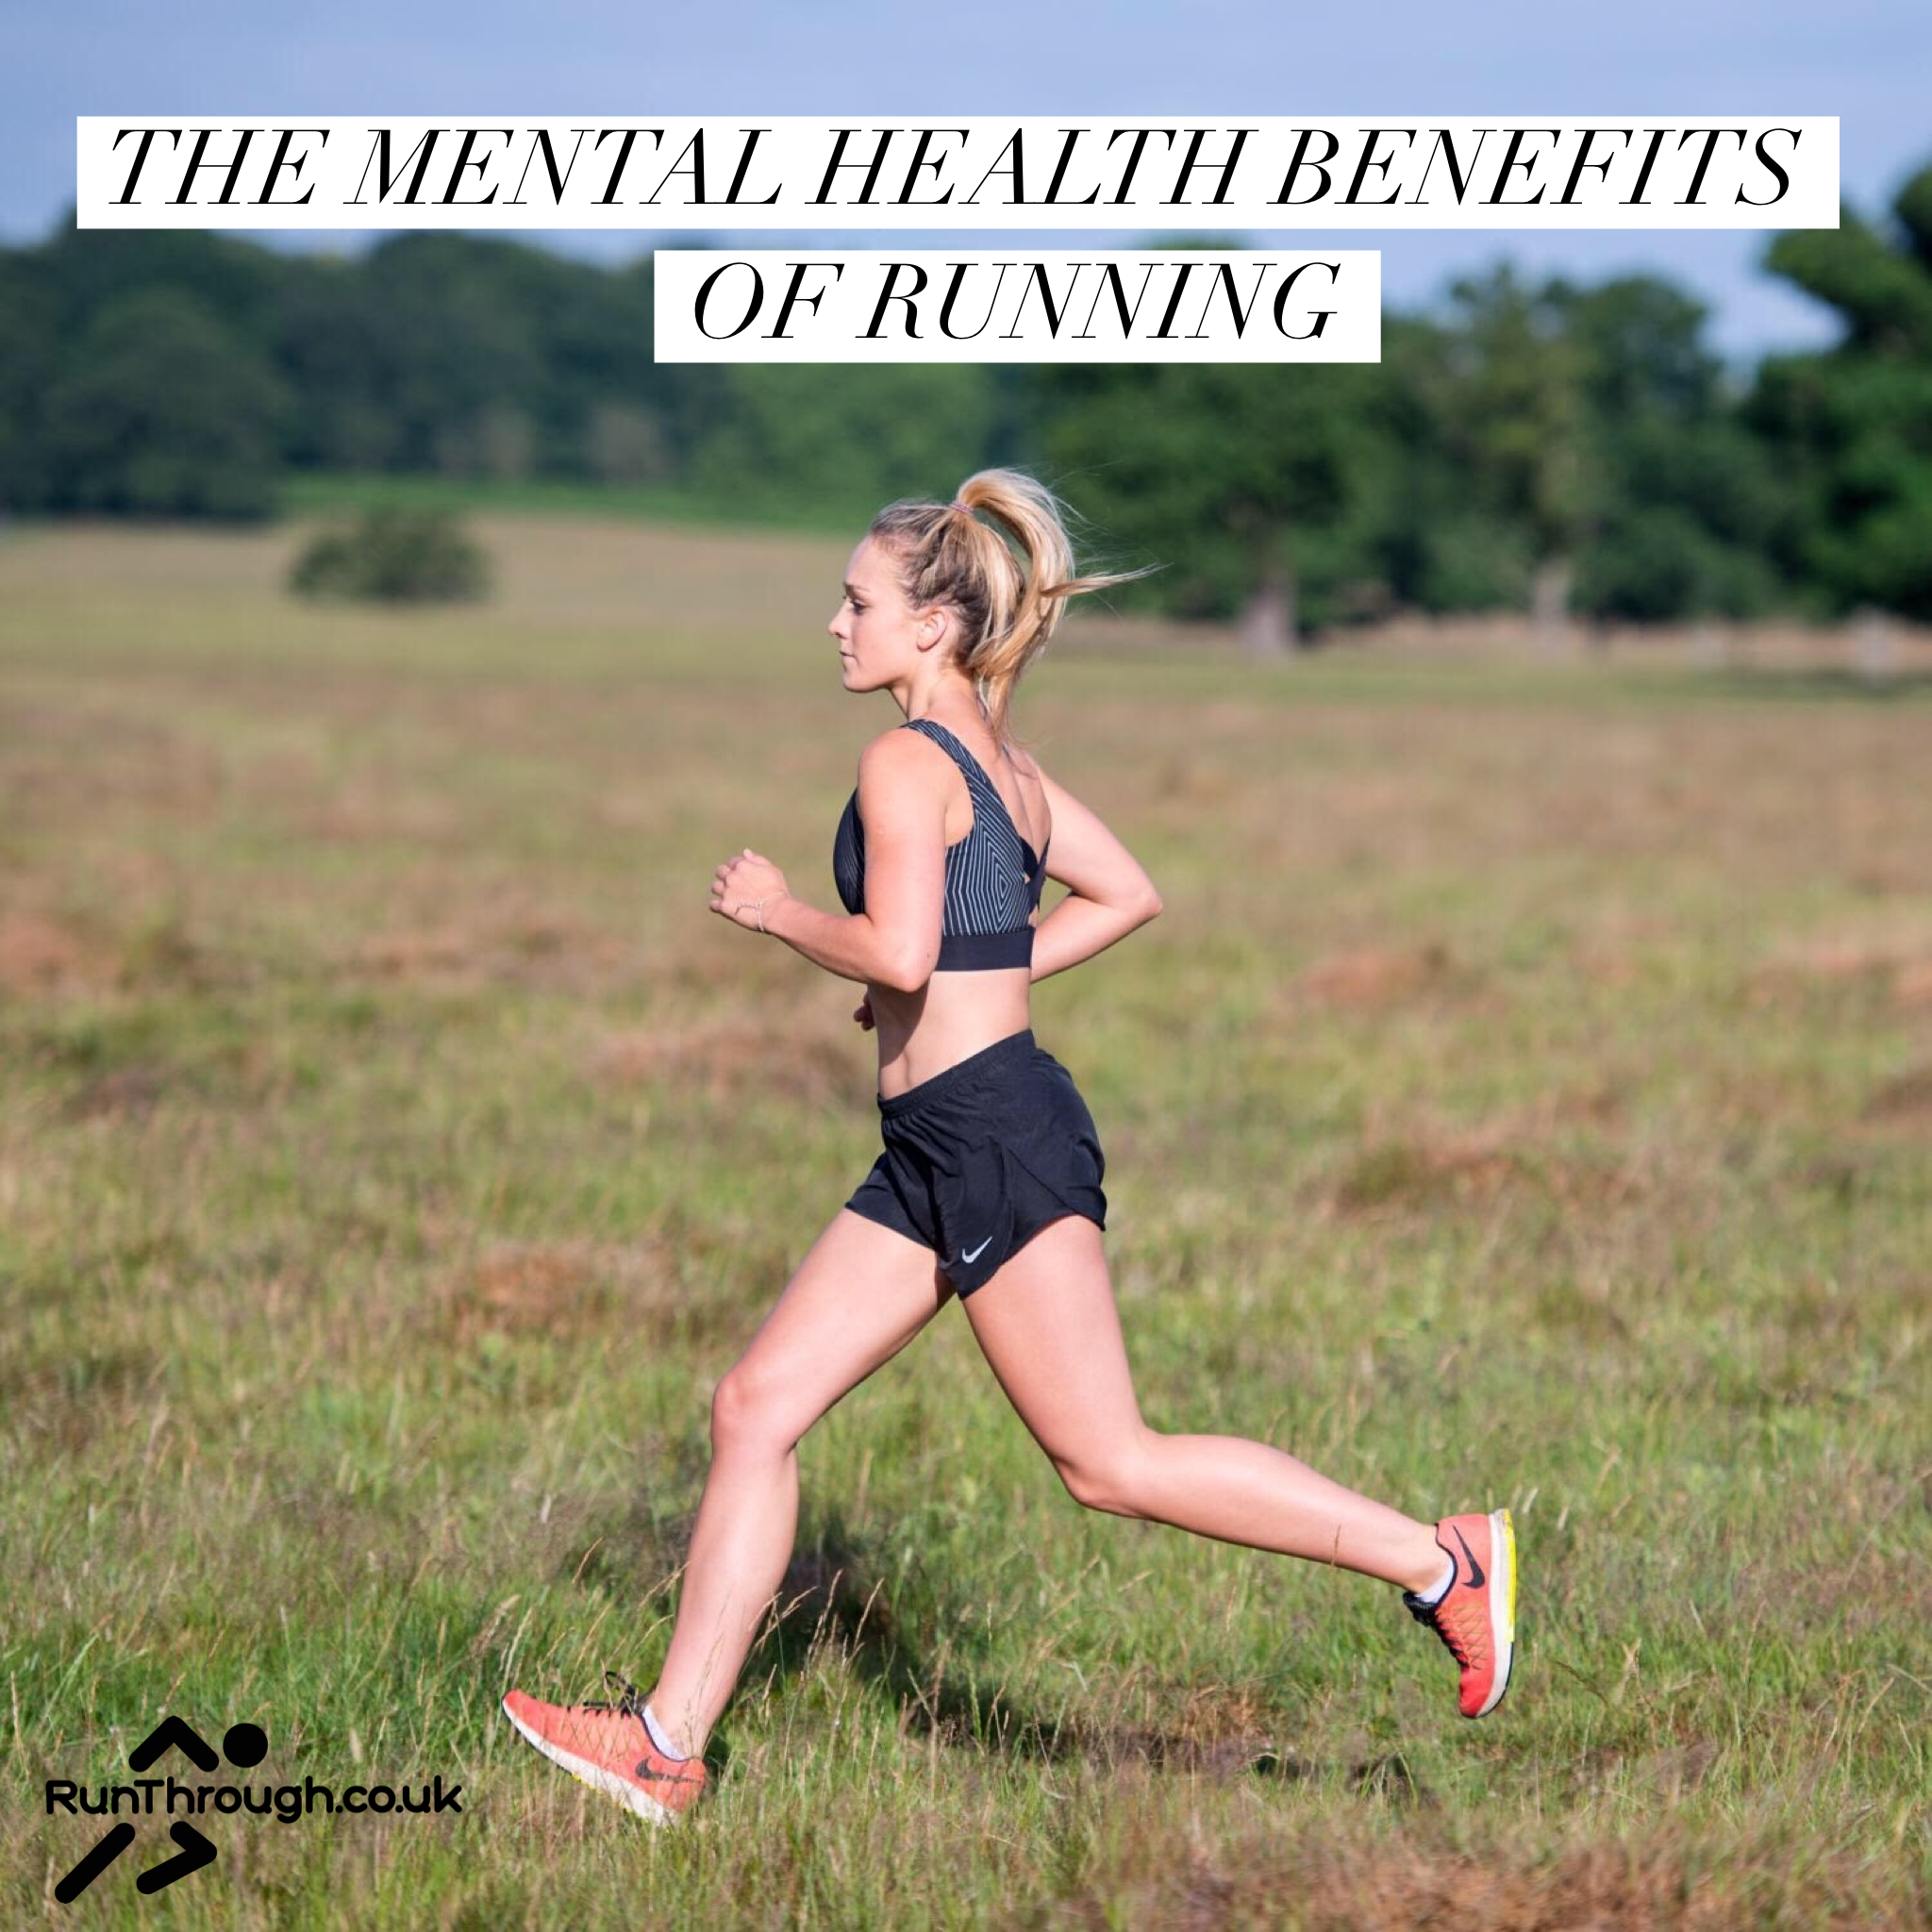 The Mental Health Benefits of Running